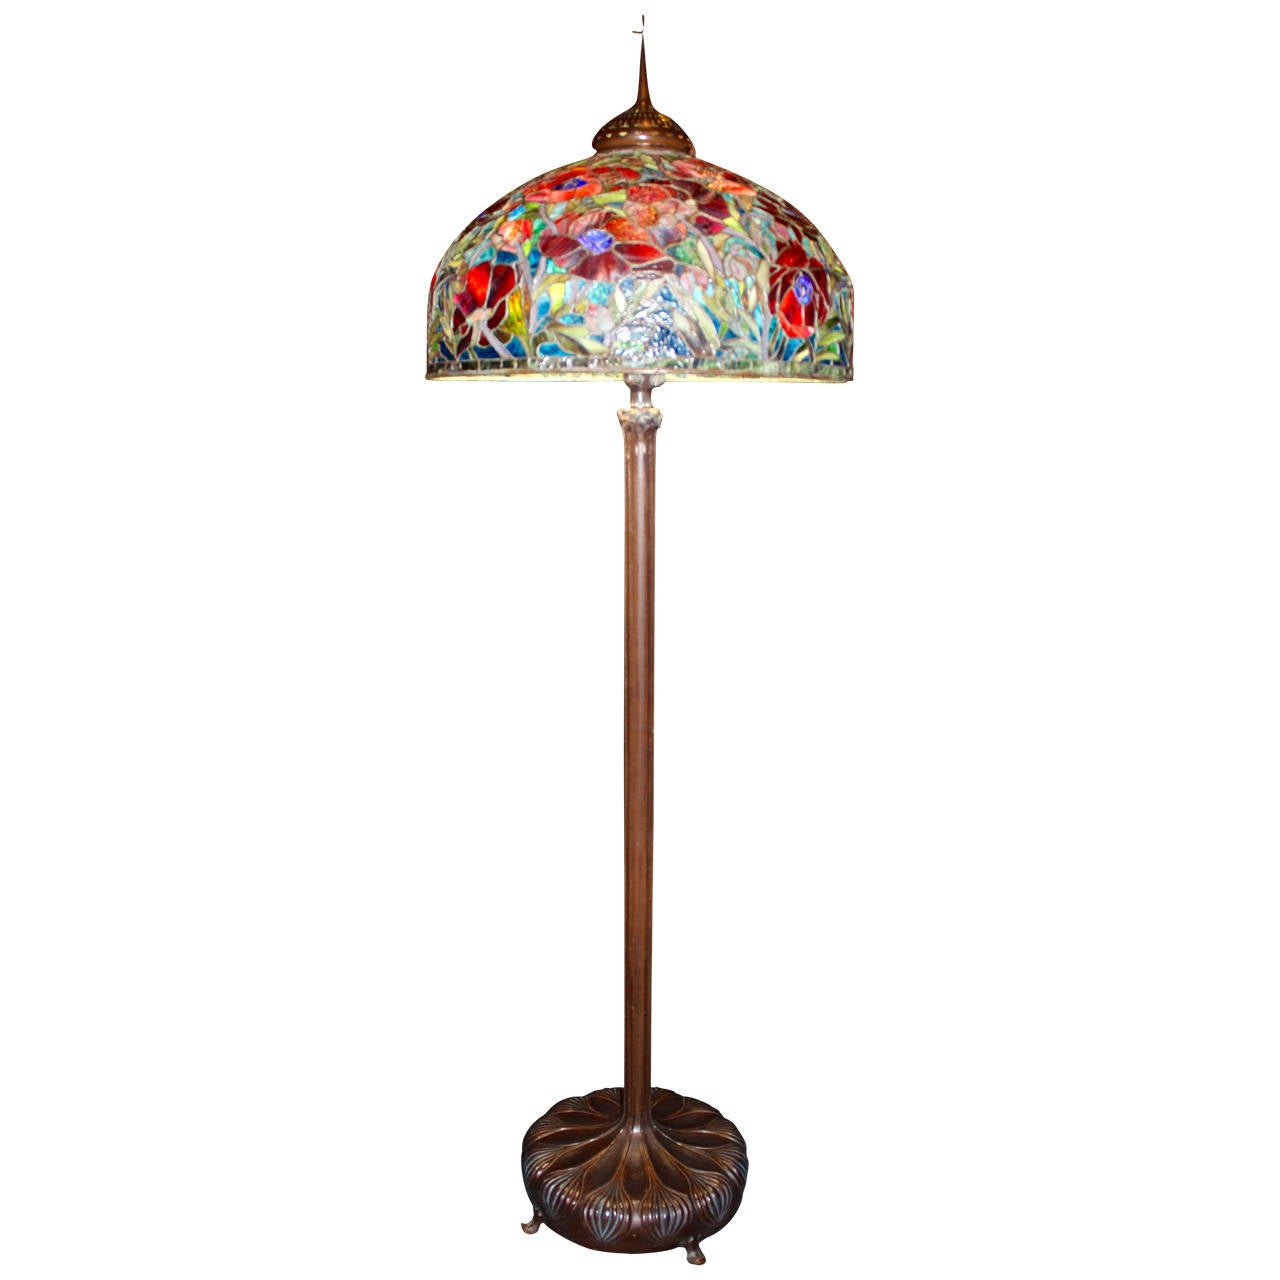 Oriental poppy tiffany style floor lamp for sale at 1stdibs oriental poppy tiffany style floor lamp 1 aloadofball